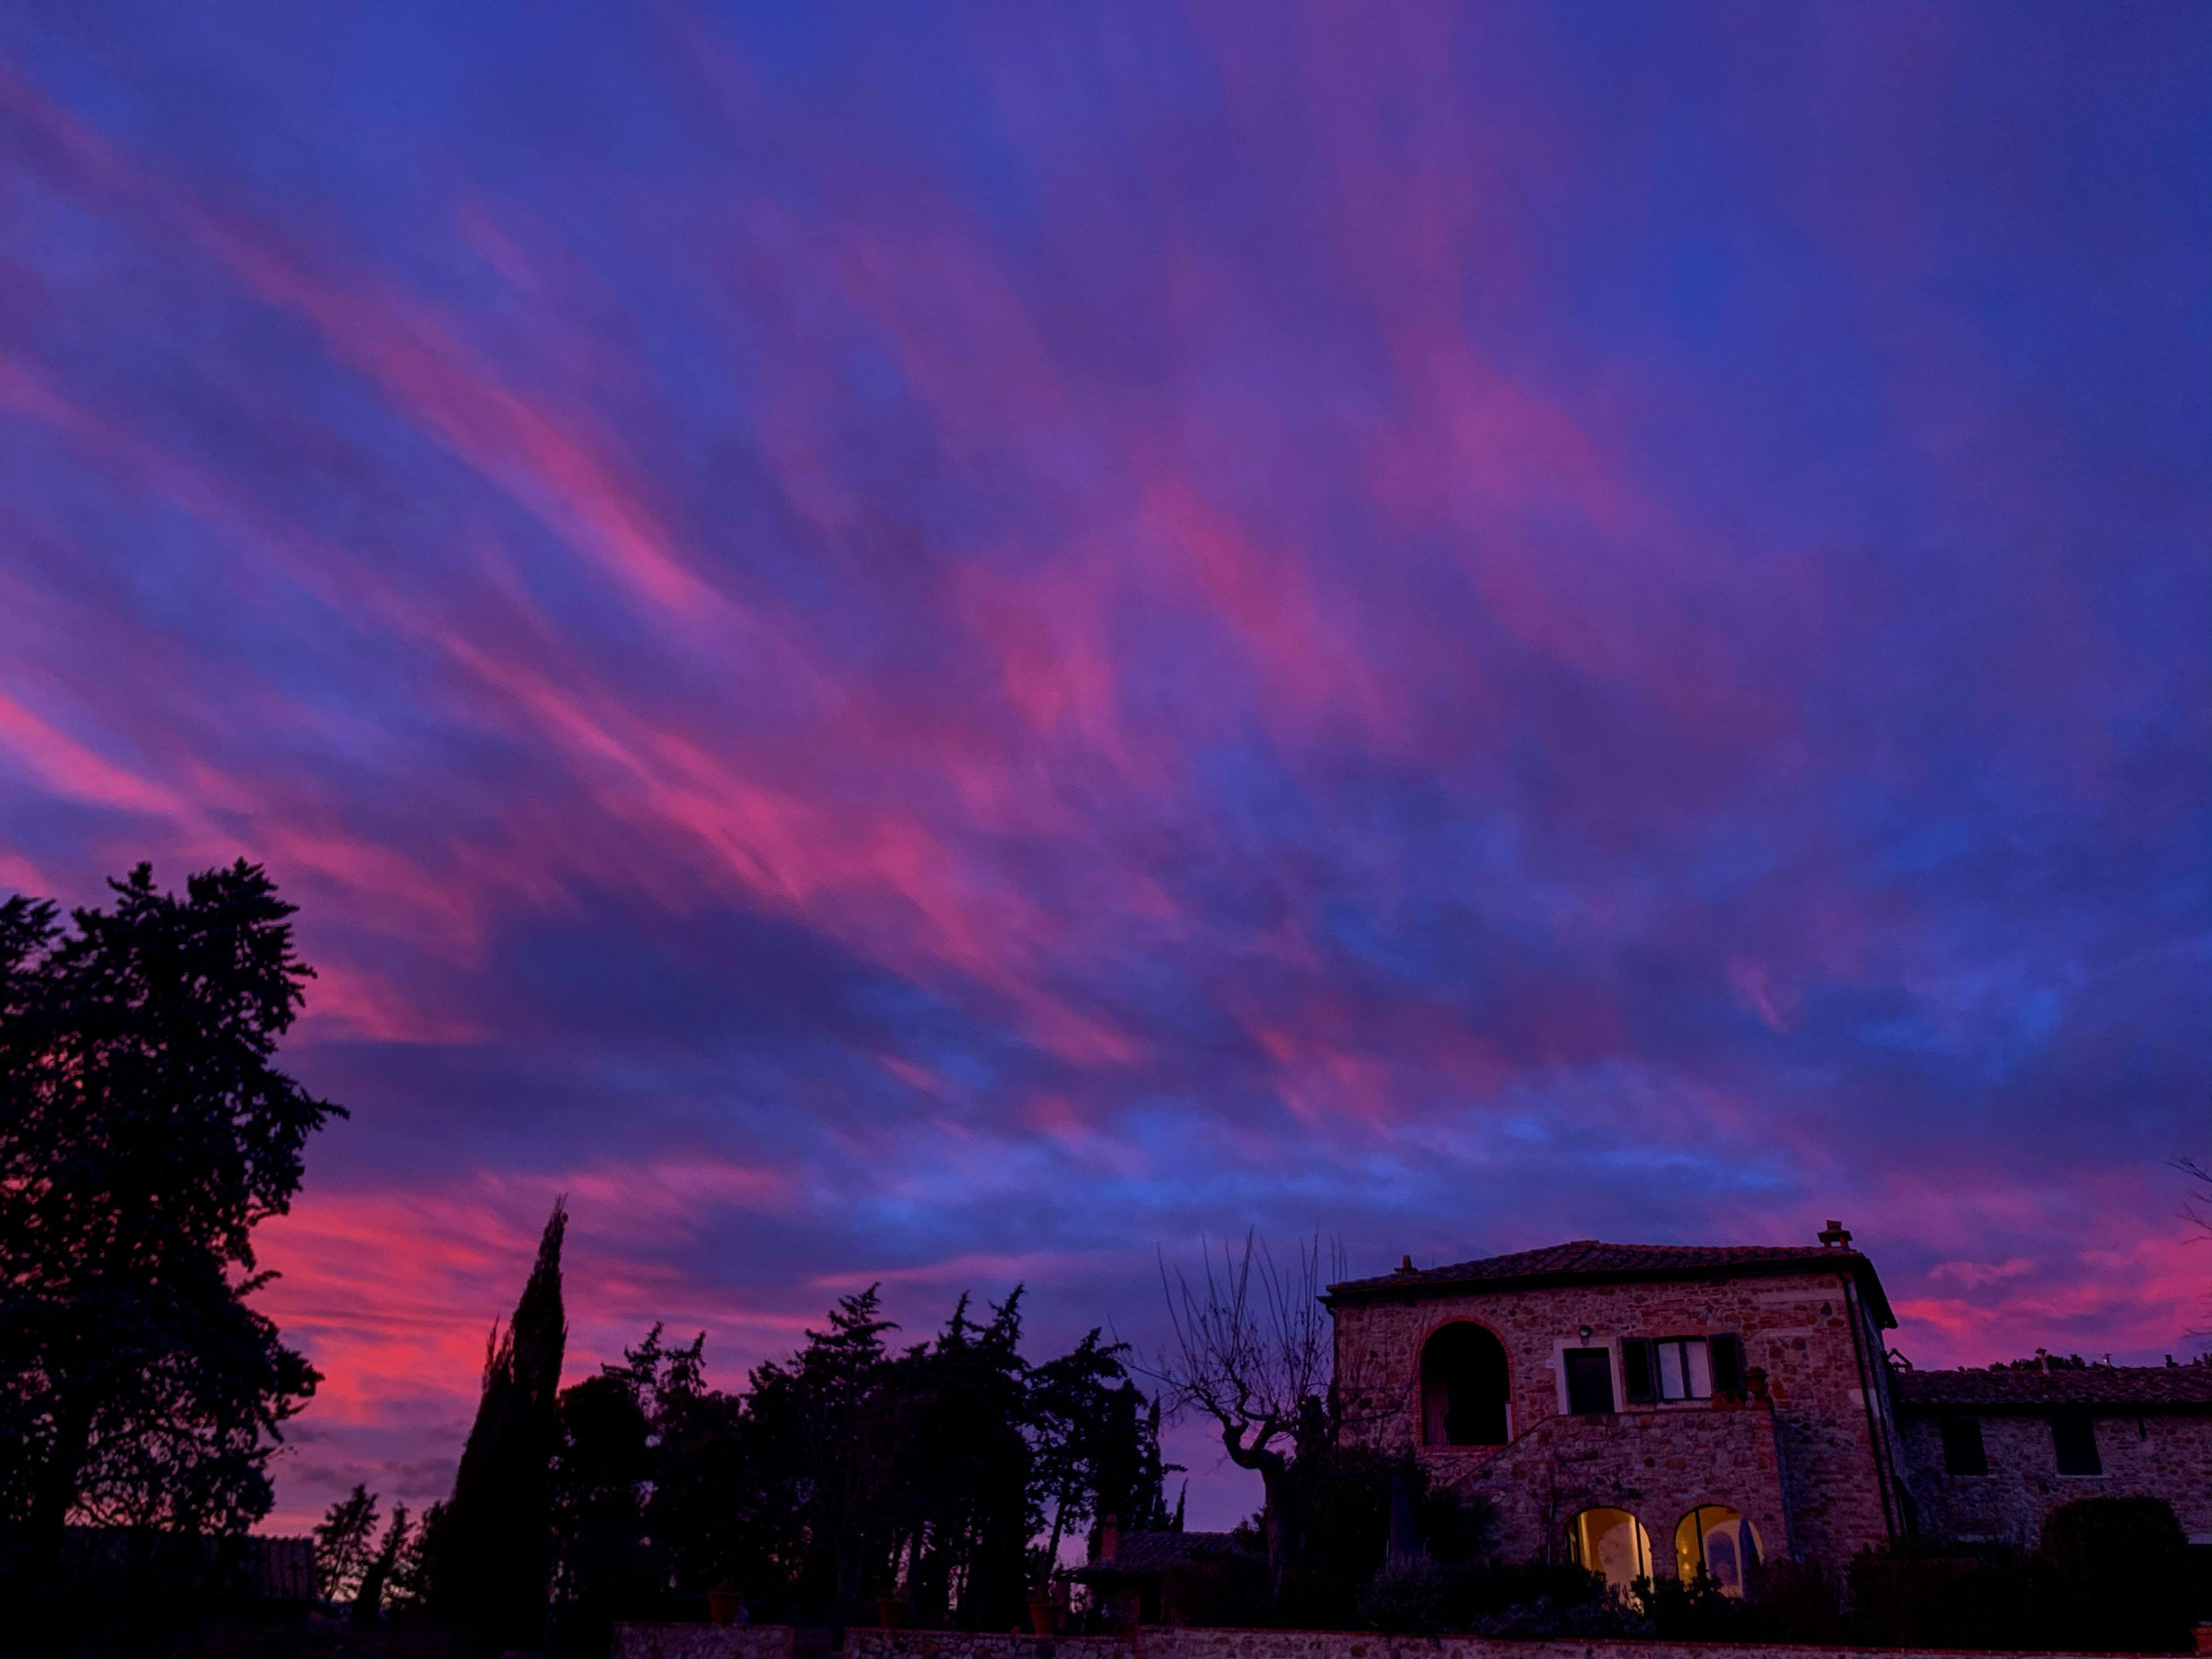 sky, building exterior, architecture, built structure, cloud - sky, sunset, tree, plant, nature, building, silhouette, no people, beauty in nature, low angle view, dramatic sky, house, dusk, outdoors, residential district, scenics - nature